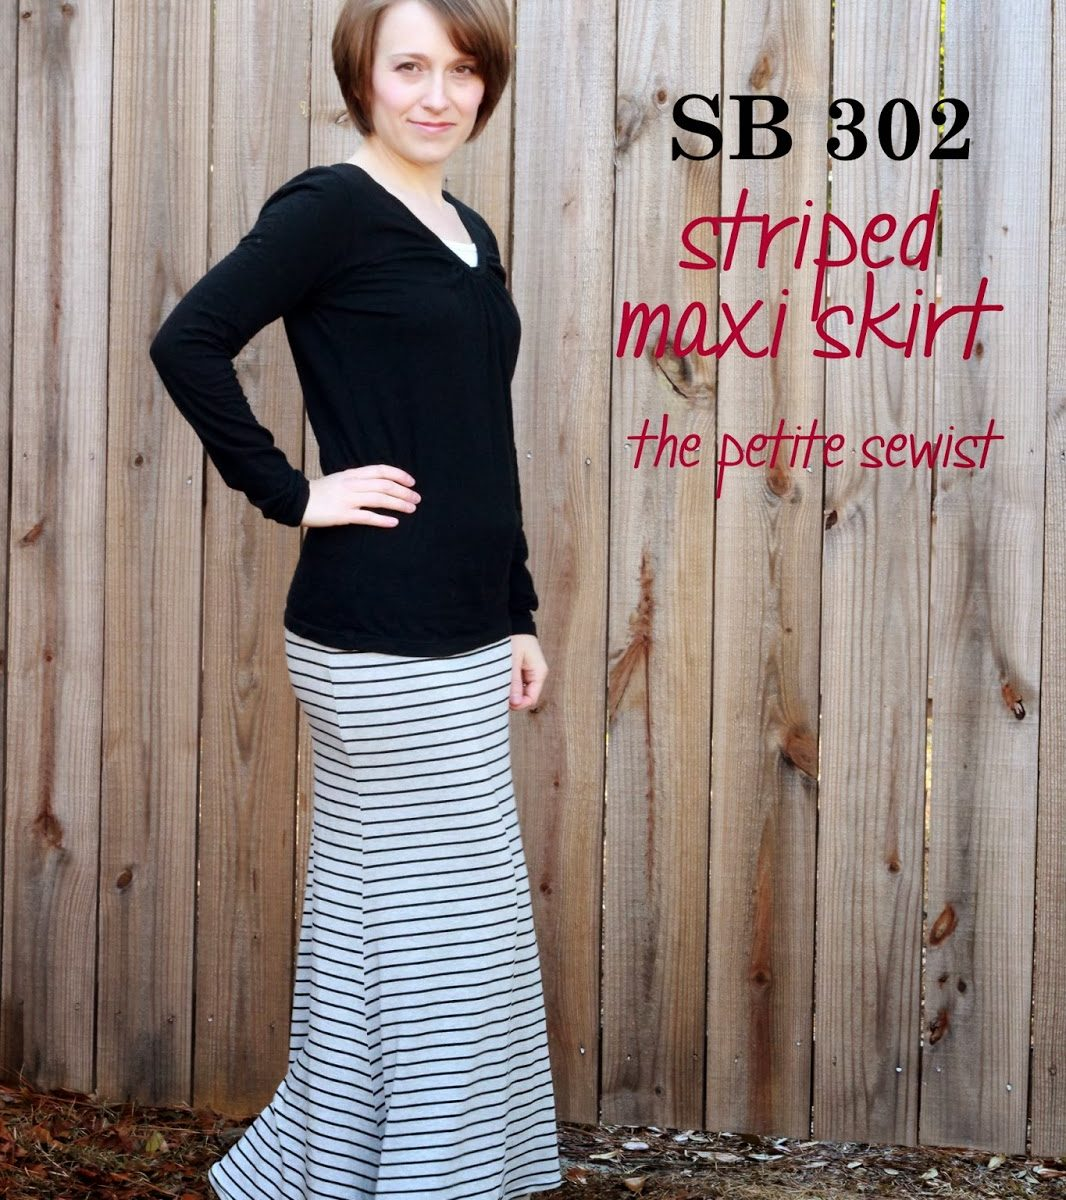 SBCC 302 Striped Maxi Skirt